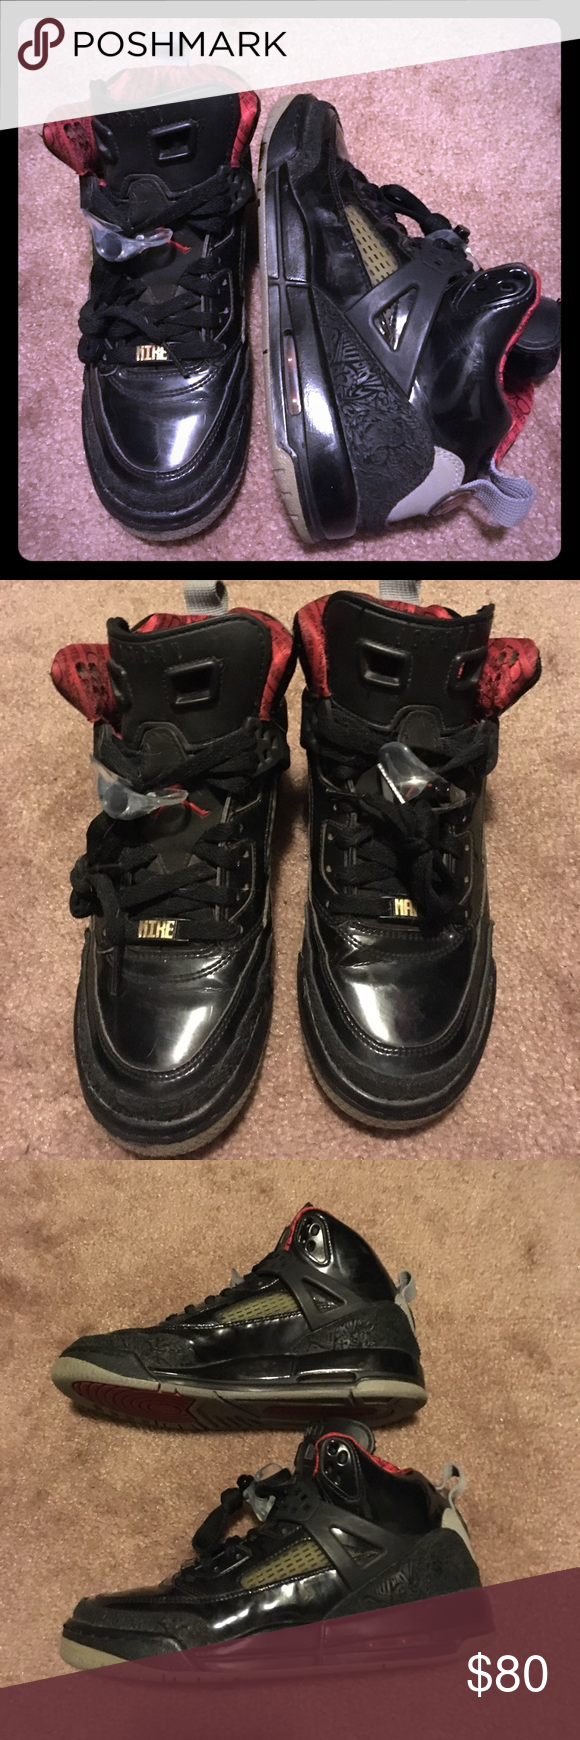 best sneakers f710d c29c7 Nike Air Jordan Spiz ike Black  Red-stealth 2010   Nike air jordans ...